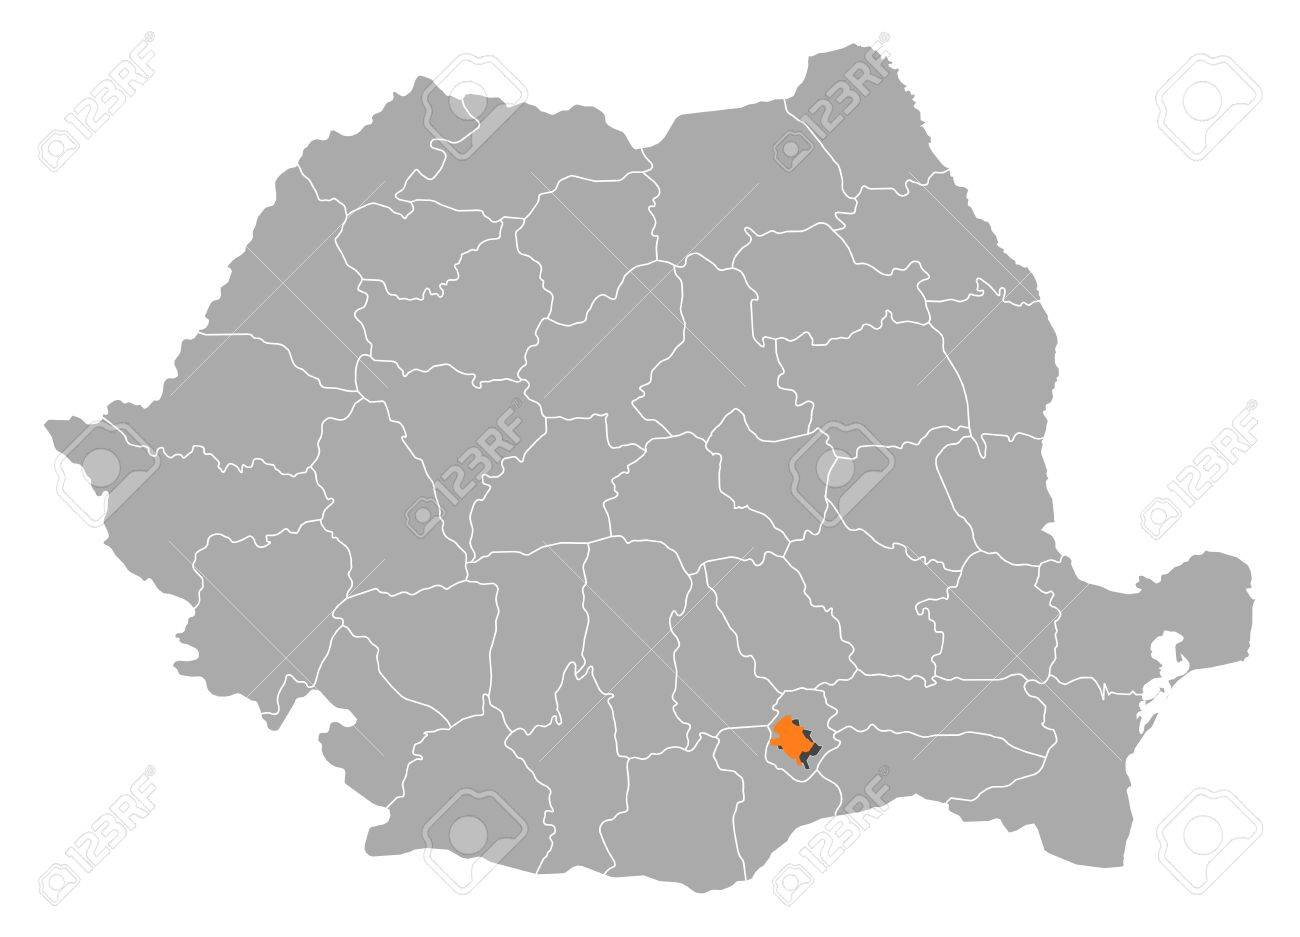 Political Map Of Romania With The Several Counties Where Bucharest ...